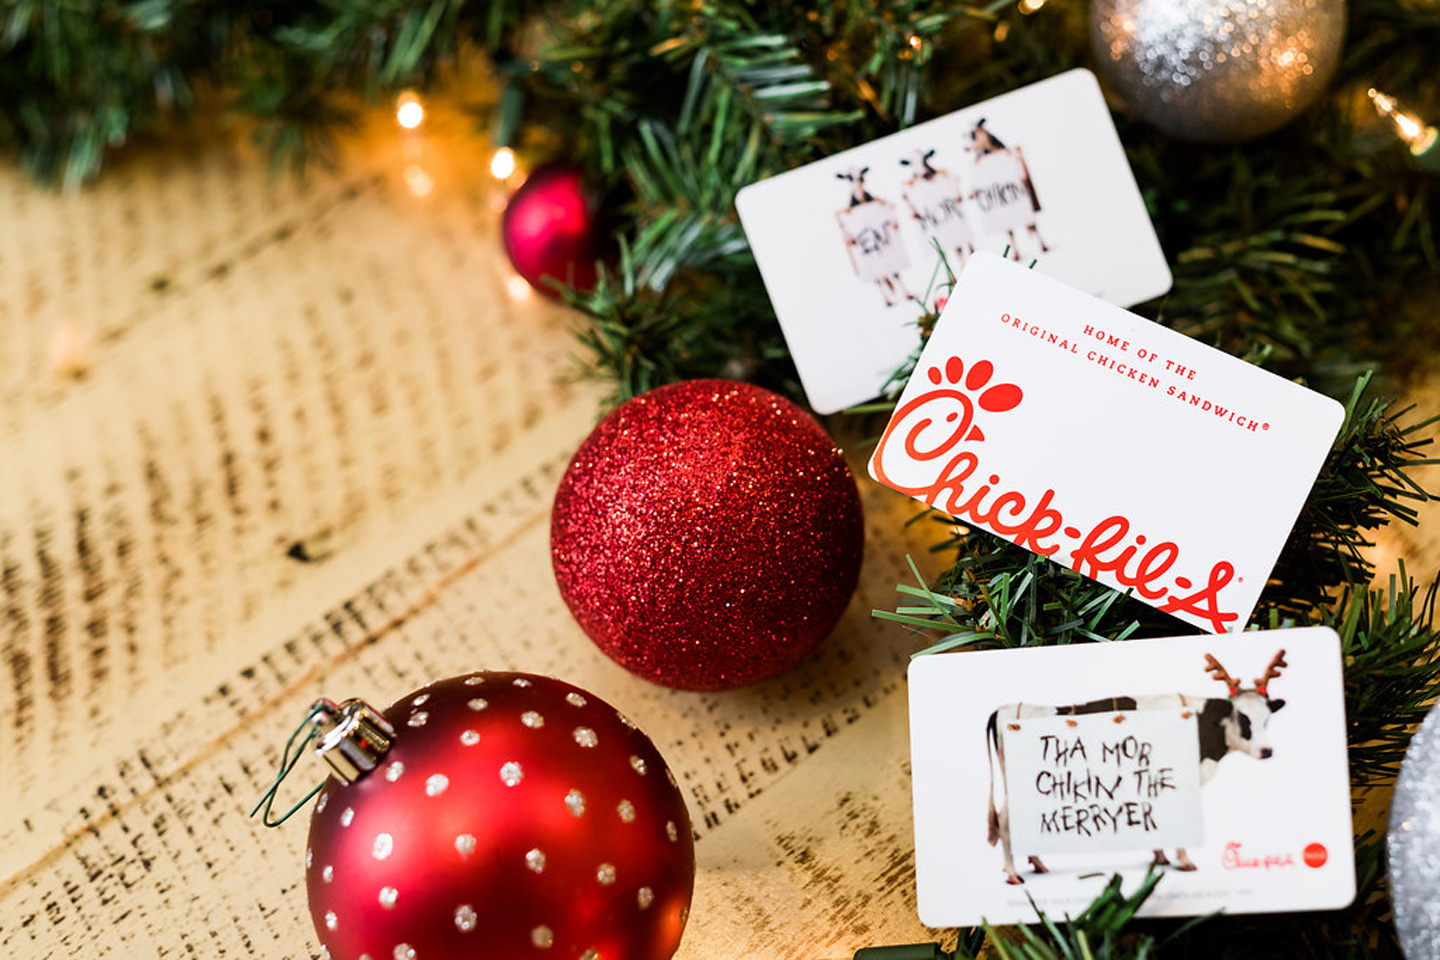 3 reasons to give a chick fil a gift card as a holiday present